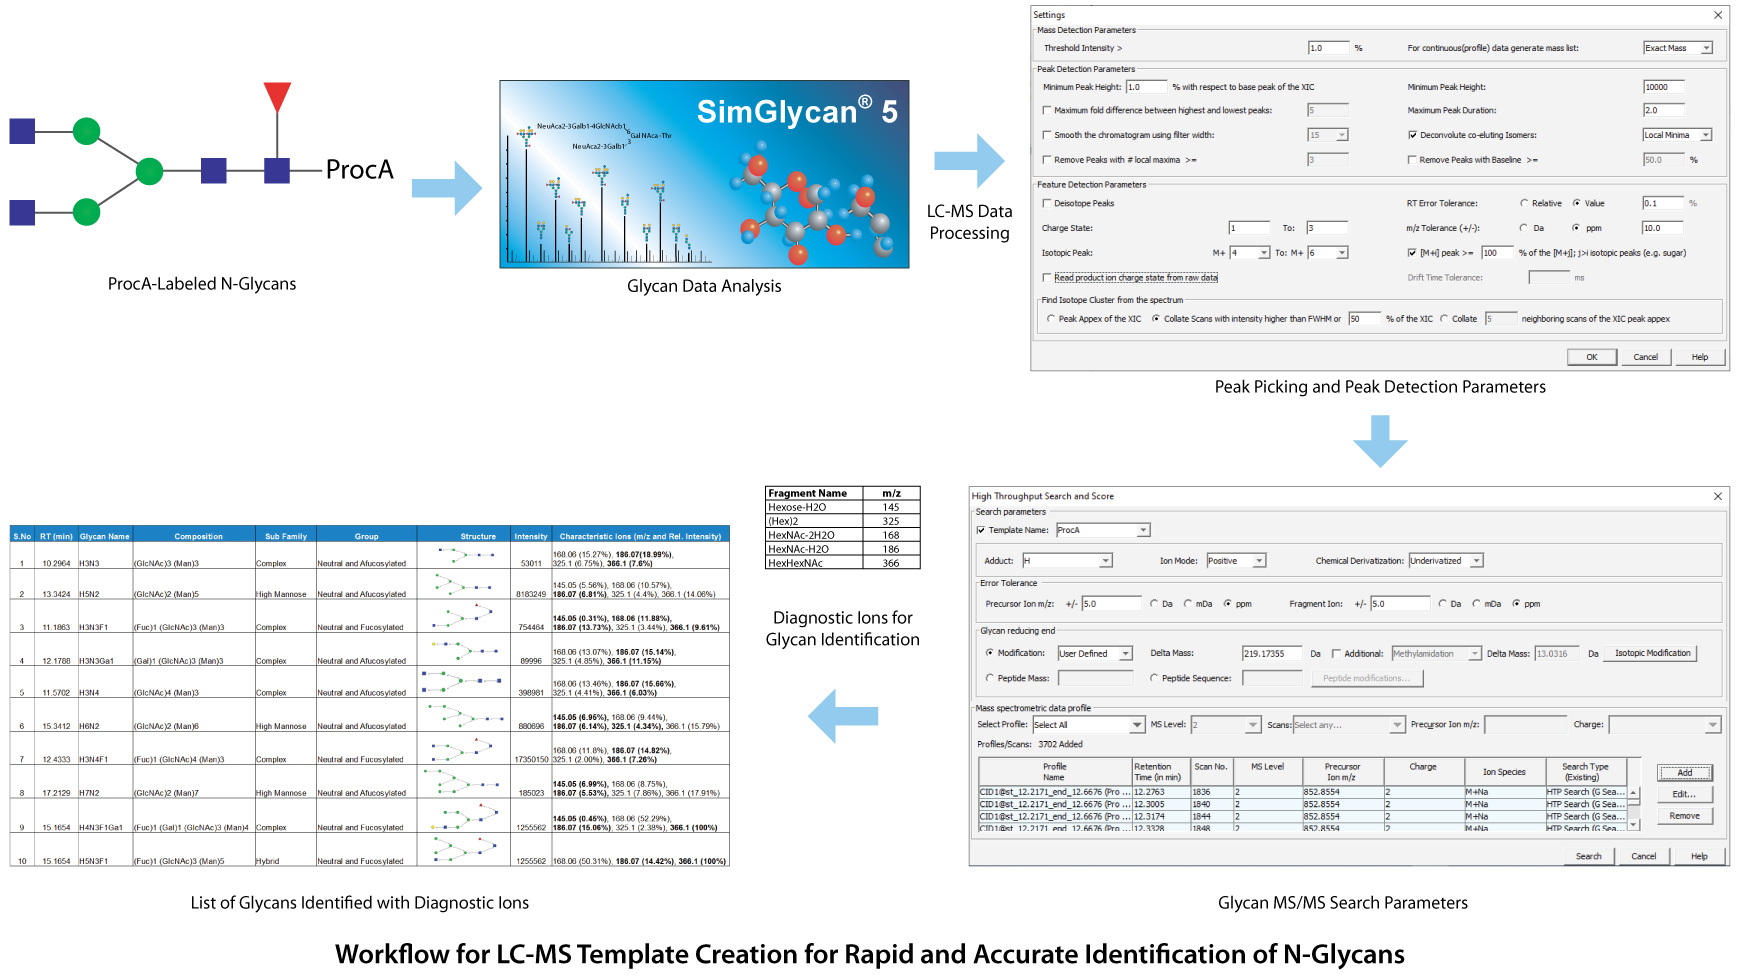 Schematic Workflow for high throughput identification and quantitation of 2-AA labelled glycans from Infliximab